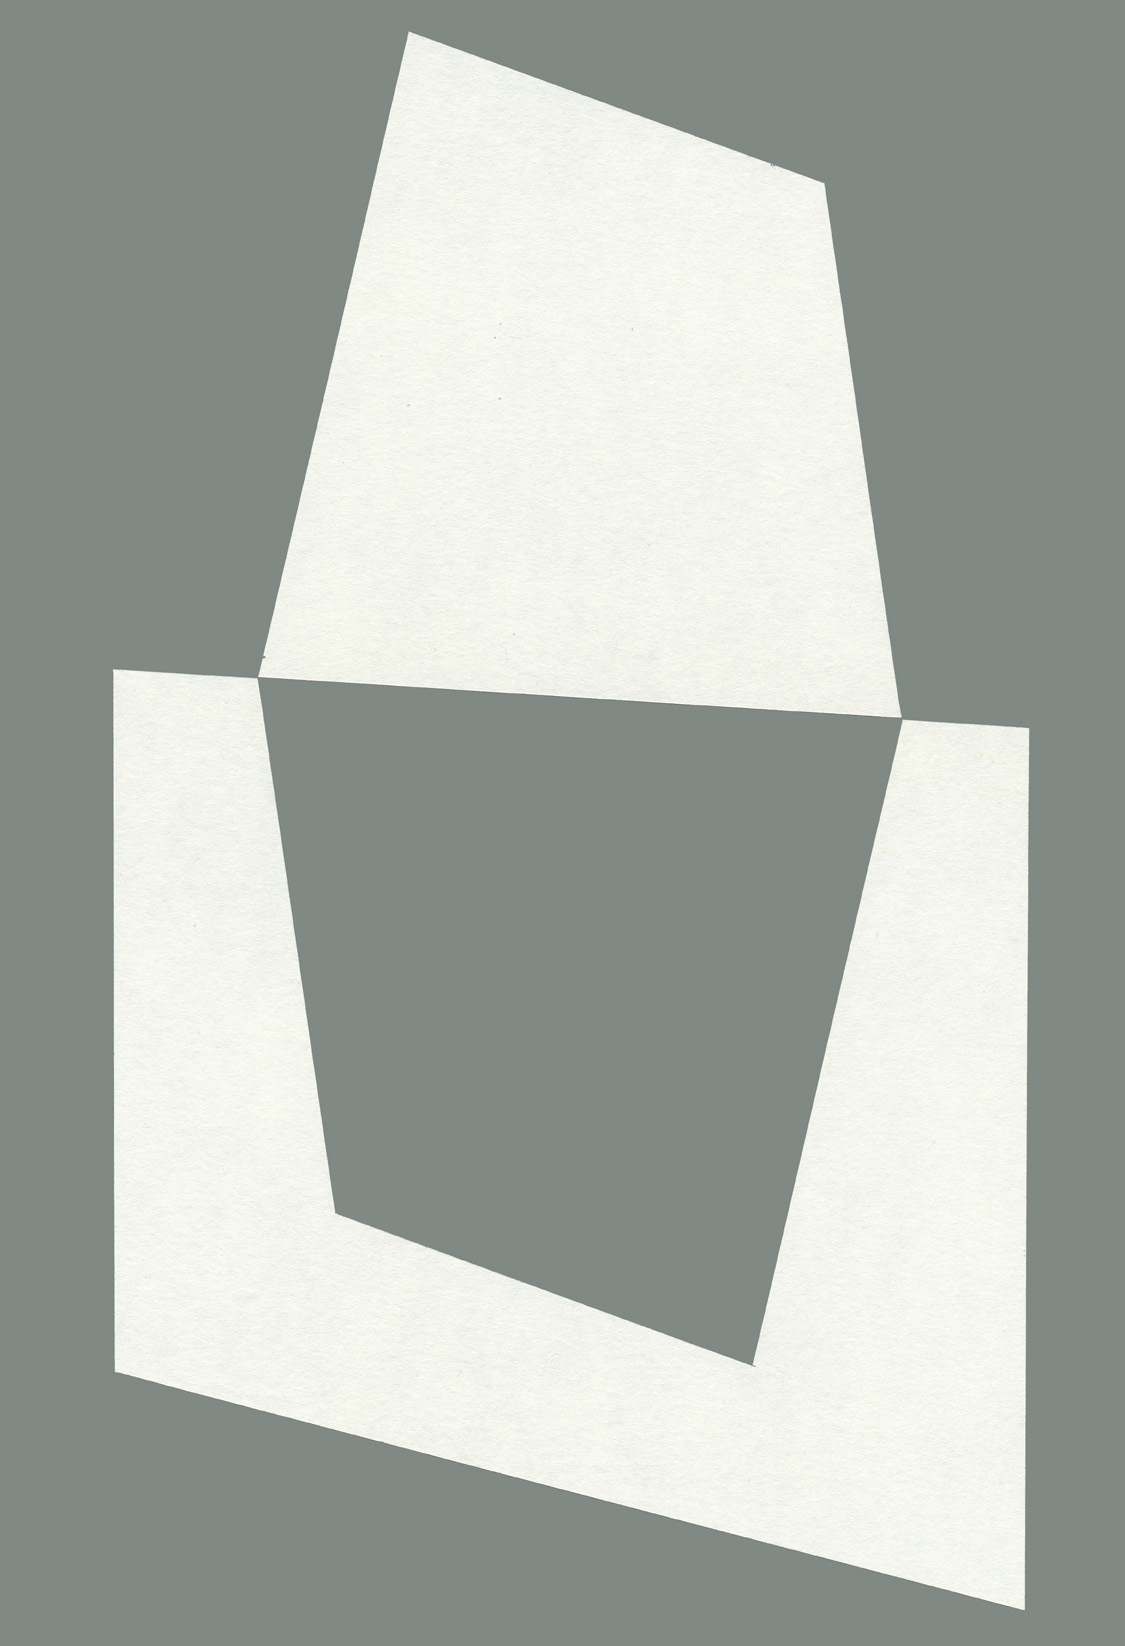 Sol y Sombra, cut paper, Mike Tedder